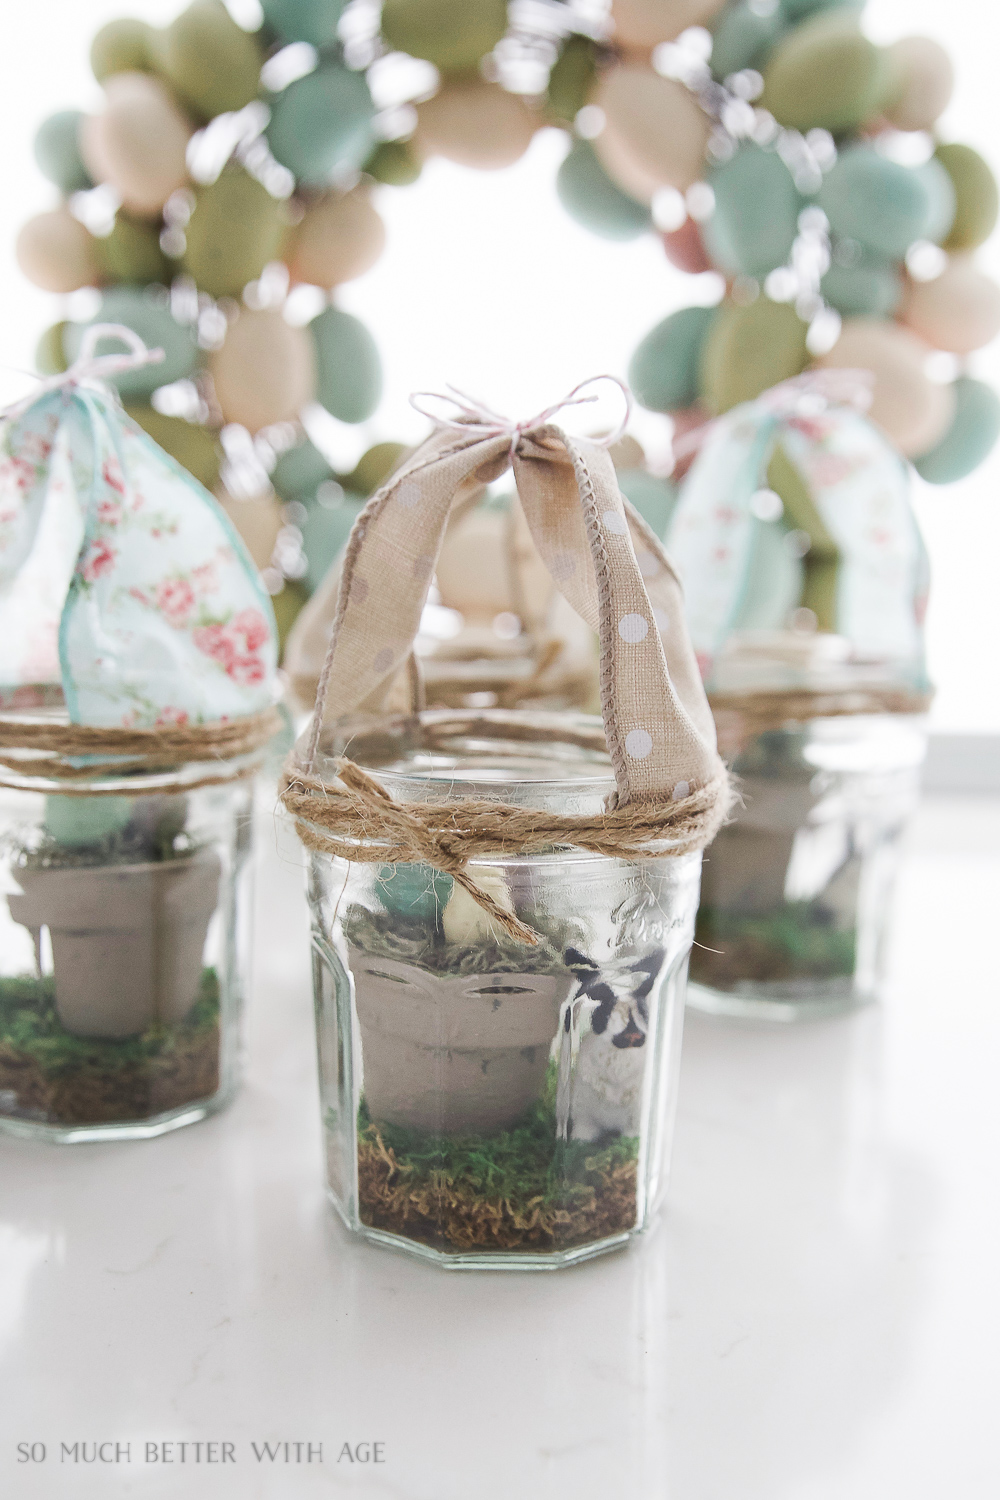 Glass Easter Jars with Bunny Ears / decorated glass jars - So Much Better With Age